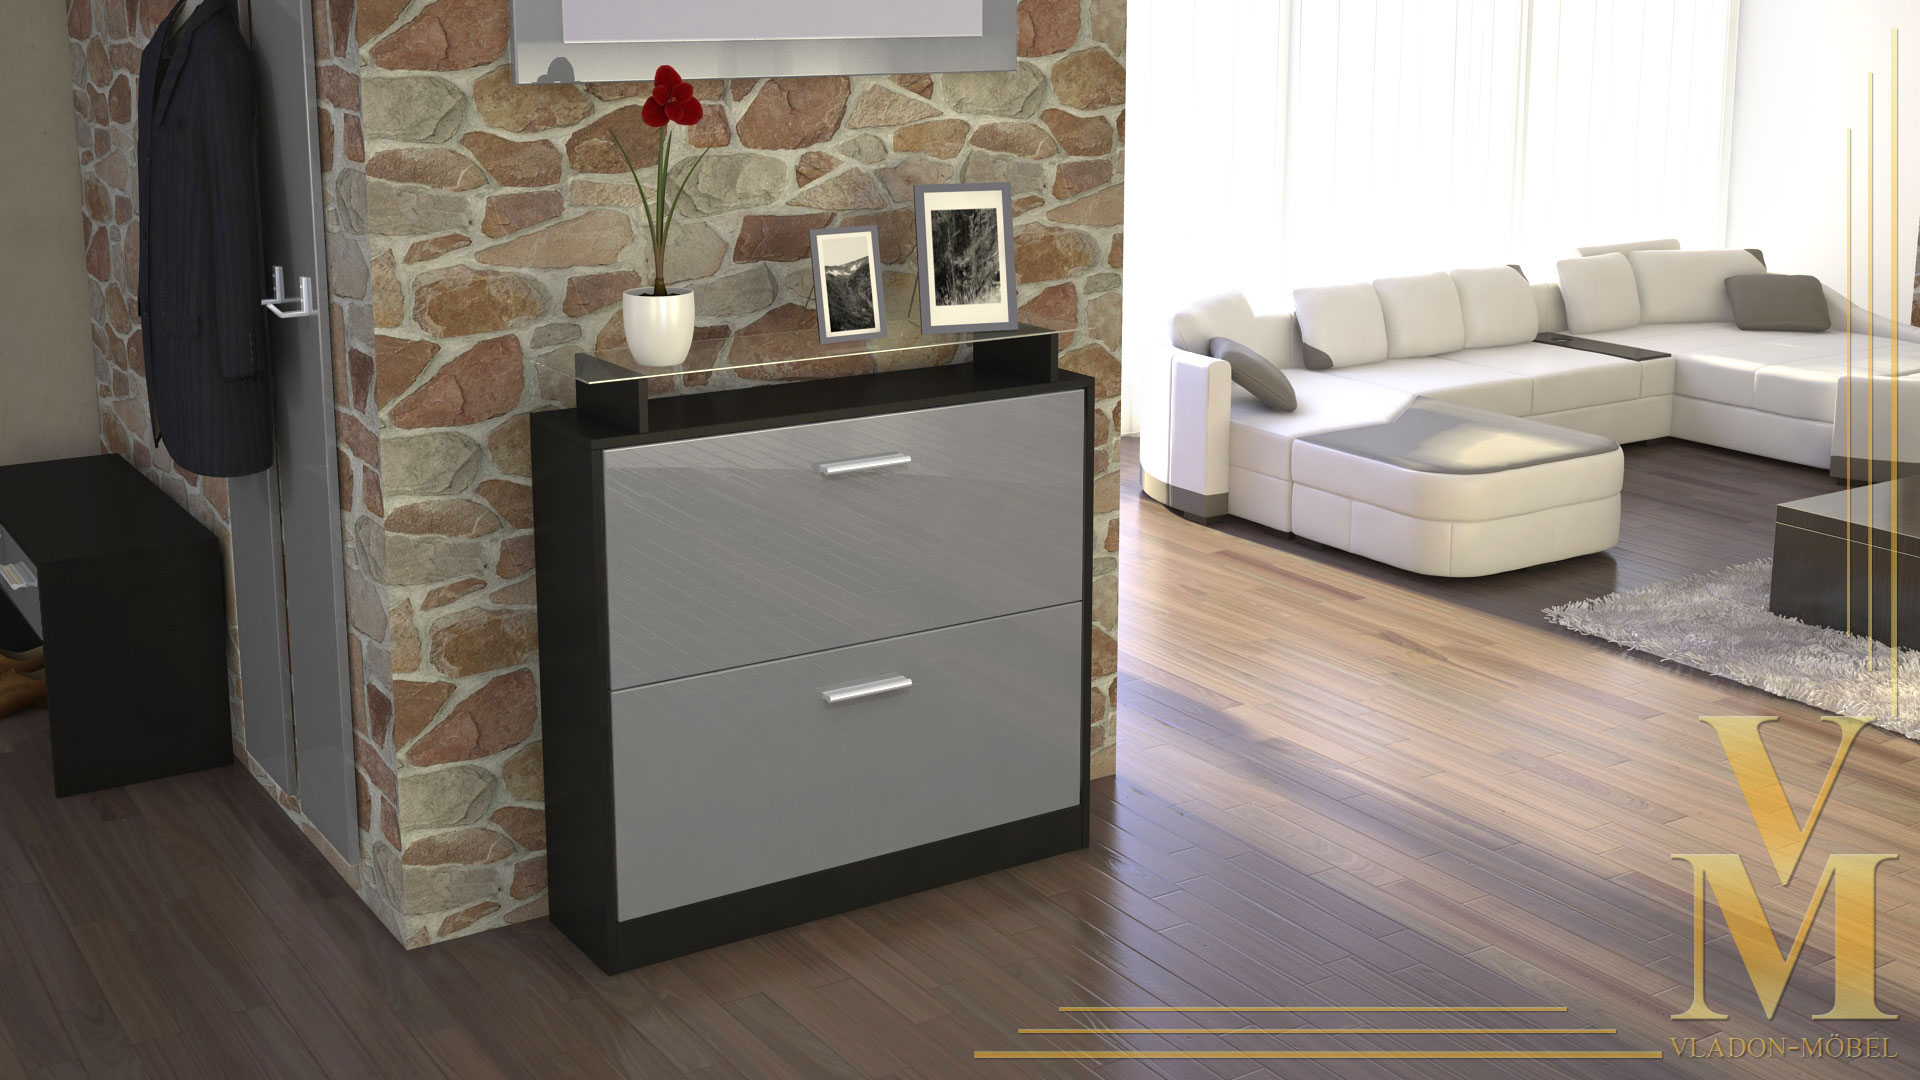 schuhschrank schuhkipper dielen flur schrank roma schwarz hochglanz naturt ne ebay. Black Bedroom Furniture Sets. Home Design Ideas